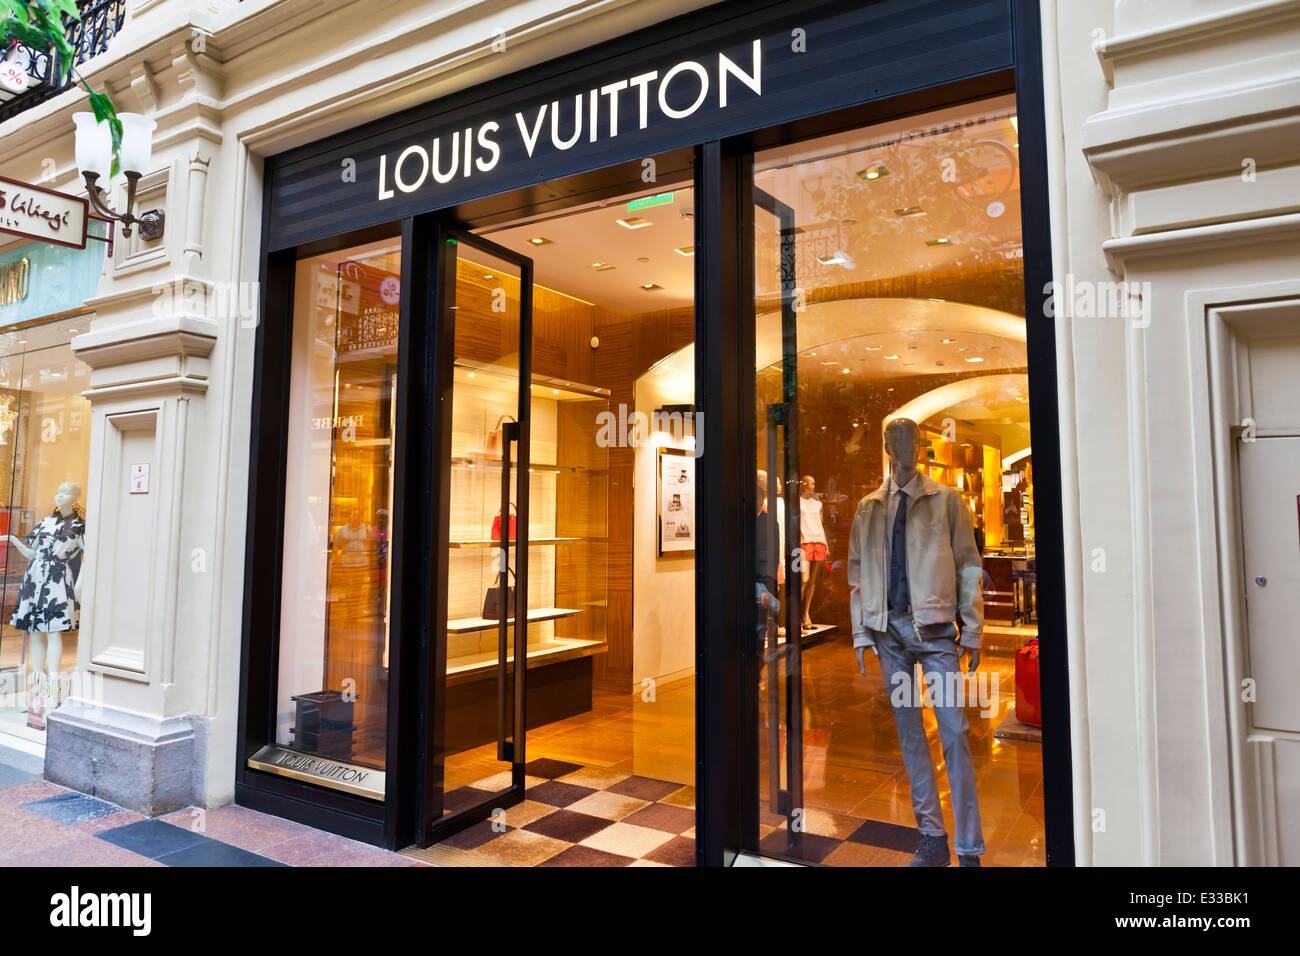 Luxury Louis Vuitton shop inside the famous Gum shopping mall in Moscow. - Stock Image